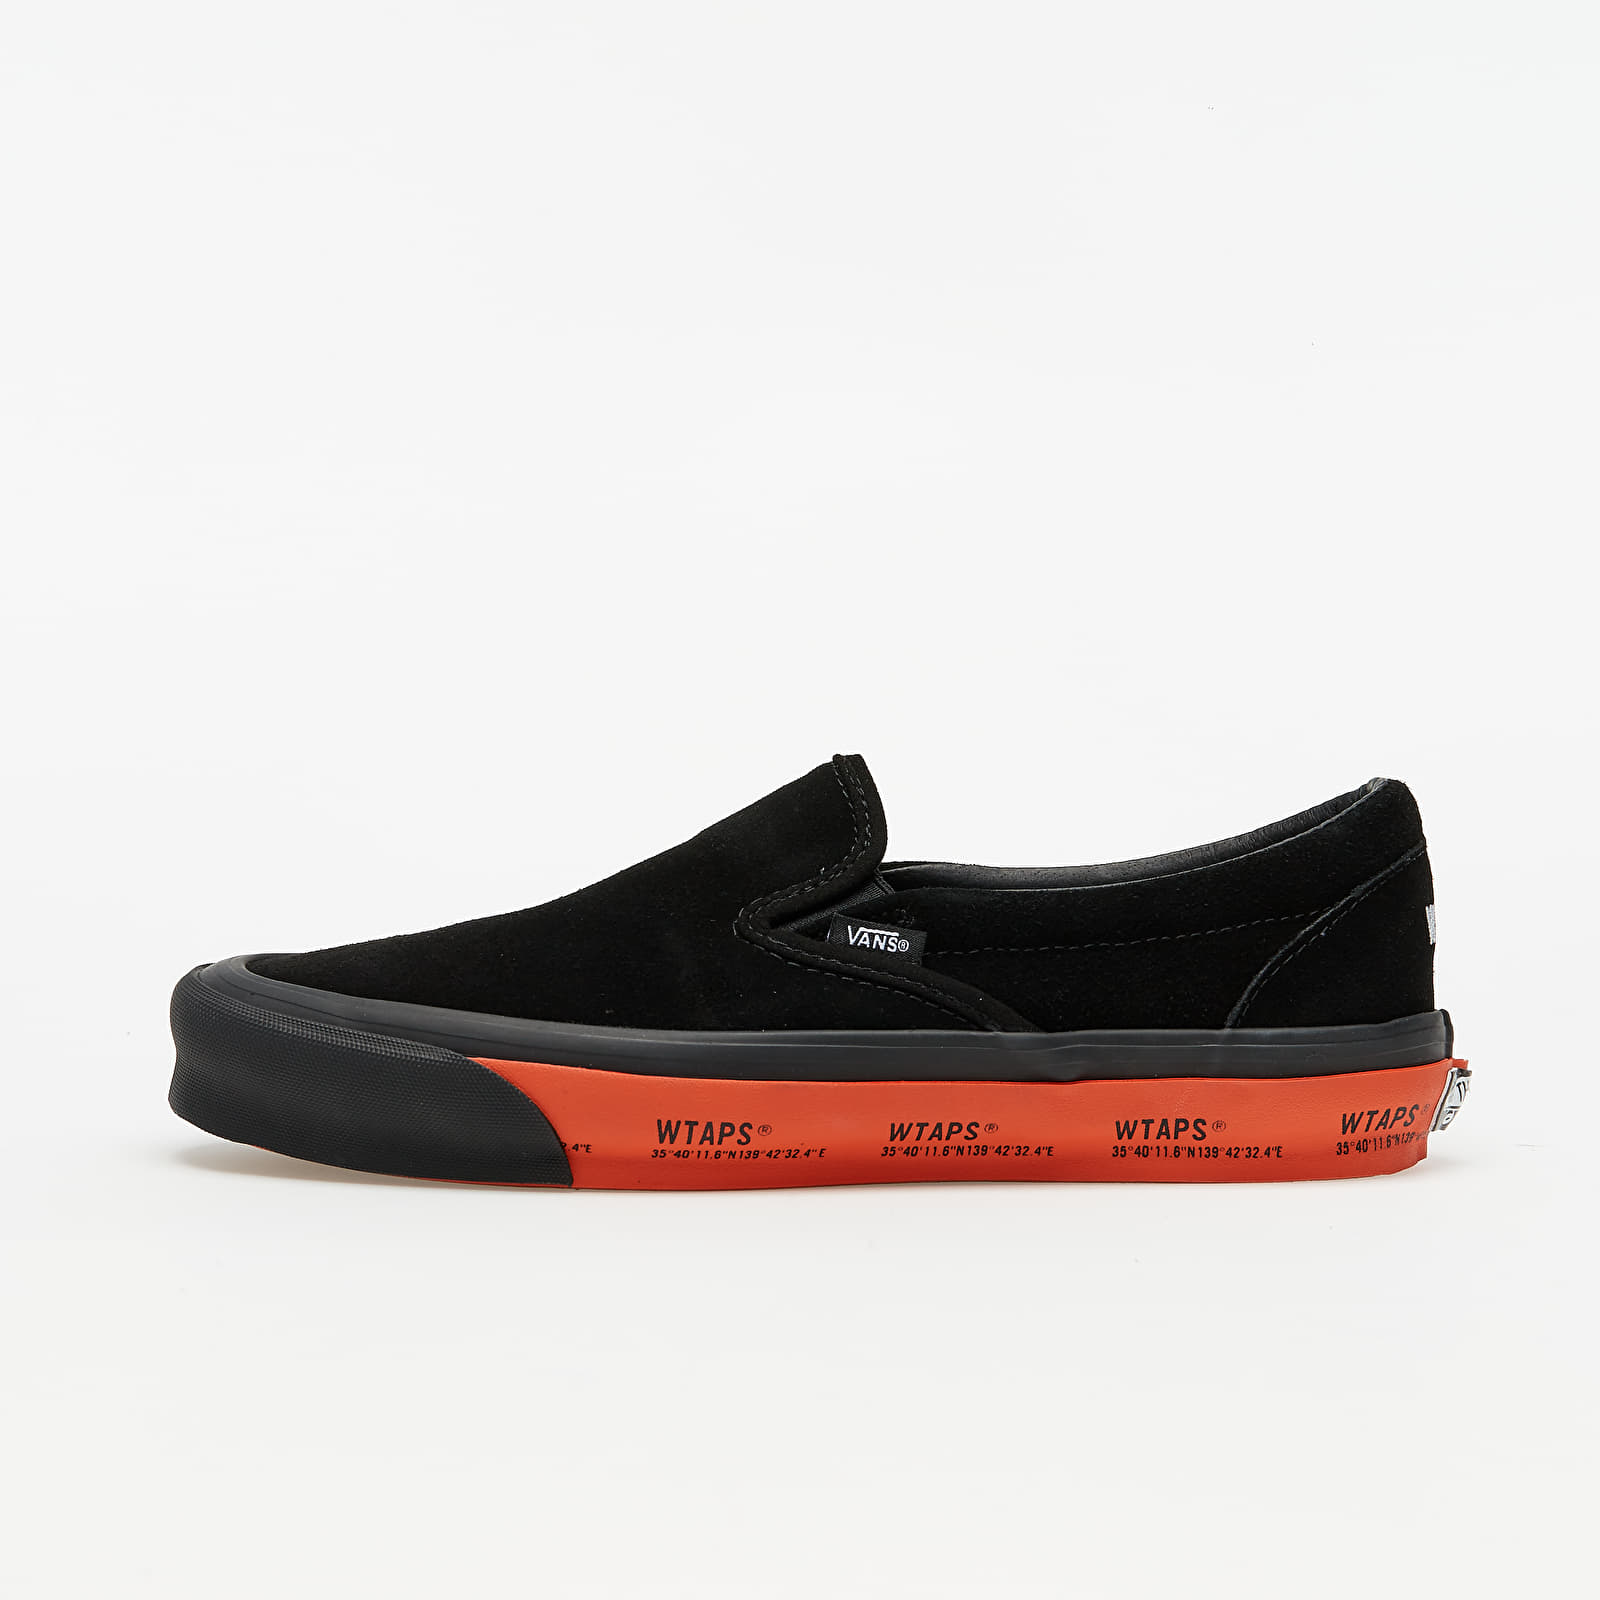 Chaussures et baskets homme Vans OG Classic Slip-On (Wtaps) Gps/ Black